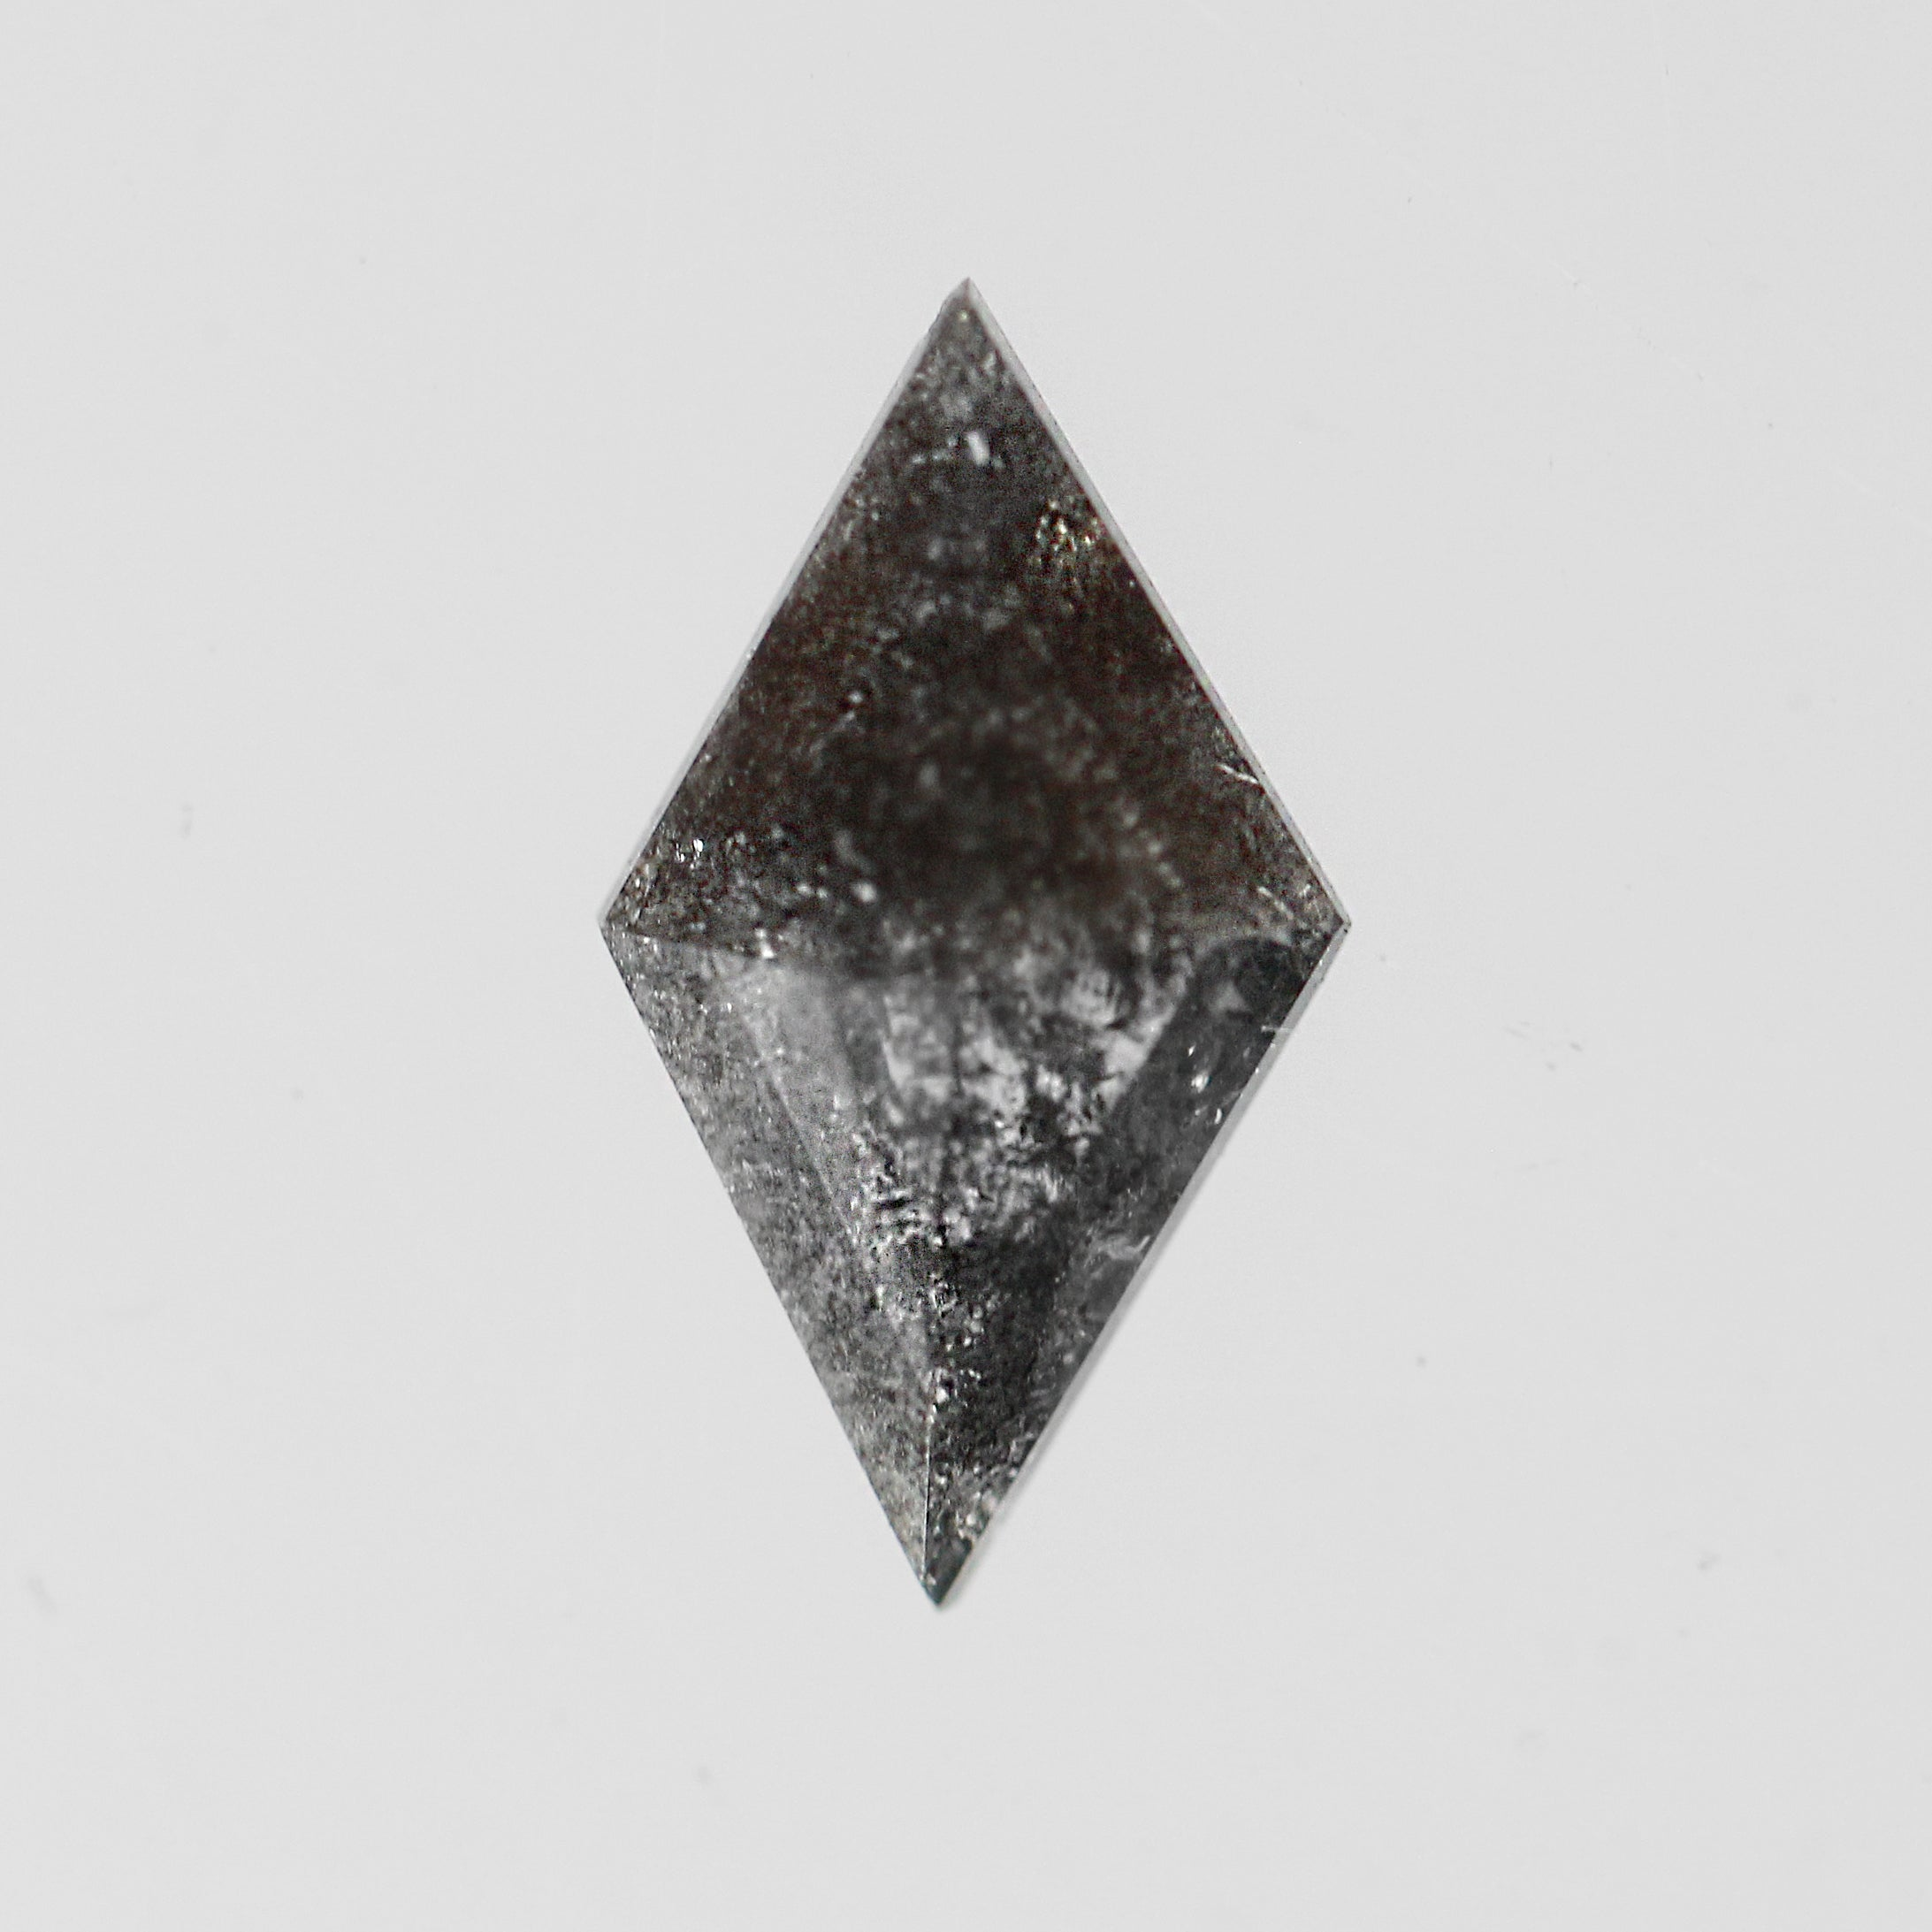 1.22 Carat Kite Celestial Diamond - Inventory Code KRB122 - Celestial Diamonds ® by Midwinter Co.